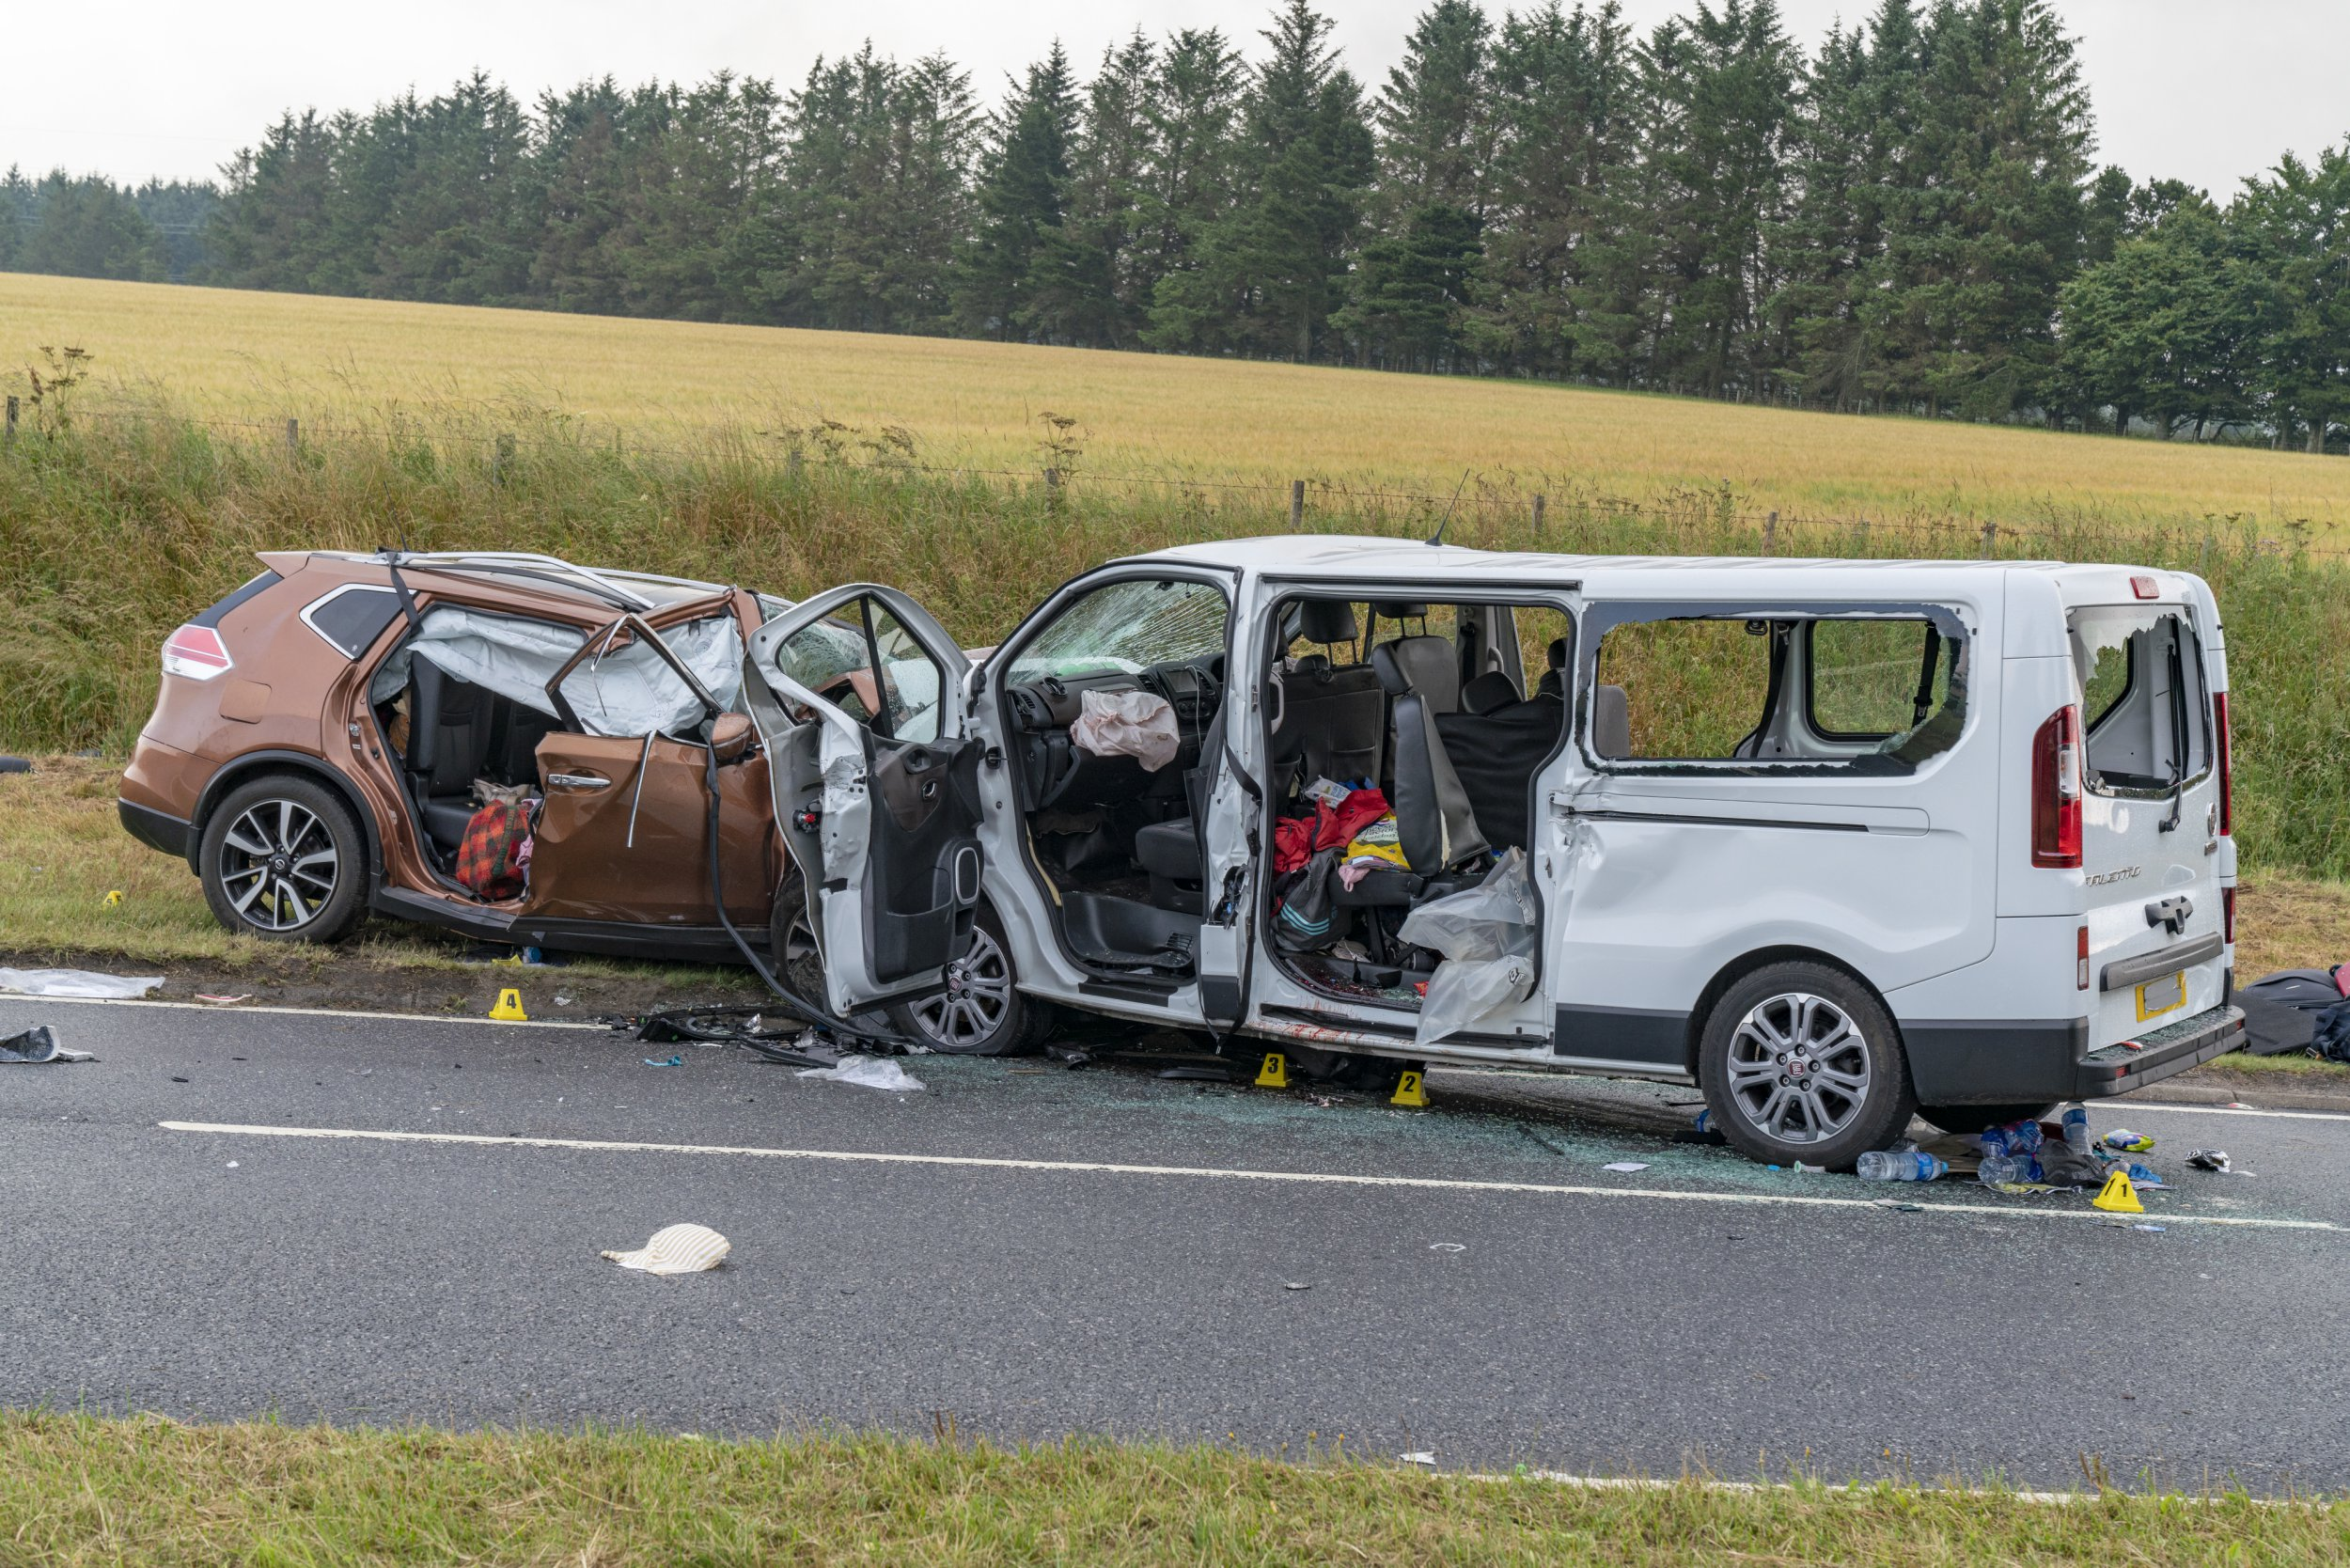 """PIX RE - Police Scotland can confirm that as a result of a serious road traffic collision on the A96 last night between Huntly and Keith (Thursday July 26, 2018) involving two vehicles, five people have sadly died. Further details will be released when available. Five further people were also involved in the incident which involved a mini-bus and a 4x4 car, one with potentially life-threatening injuries. A section of the A96 has been closed with local diversions in place - for the diversion northbound at Huntly take the A920 to Dufftown then onto A941 to the A95 at Craigllachie and follow to Keith for the A96. Reverse for southbound. Road Policing Sergeant Peter Henderson said: """"Motorists are thanked for their patience at this time and we would urge anyone who was in the area last night leading up to the incident at around 11.50pm to please get in touch as our enquiries at the scene continue. Please quote ref. no. 5002 of July 26. """"Our thoughts are with all those affected by this tragic incident at this very sad time."""" PHOTOGRAPHED BY BRIAN SMITH T/A JASPERIMAGE"""